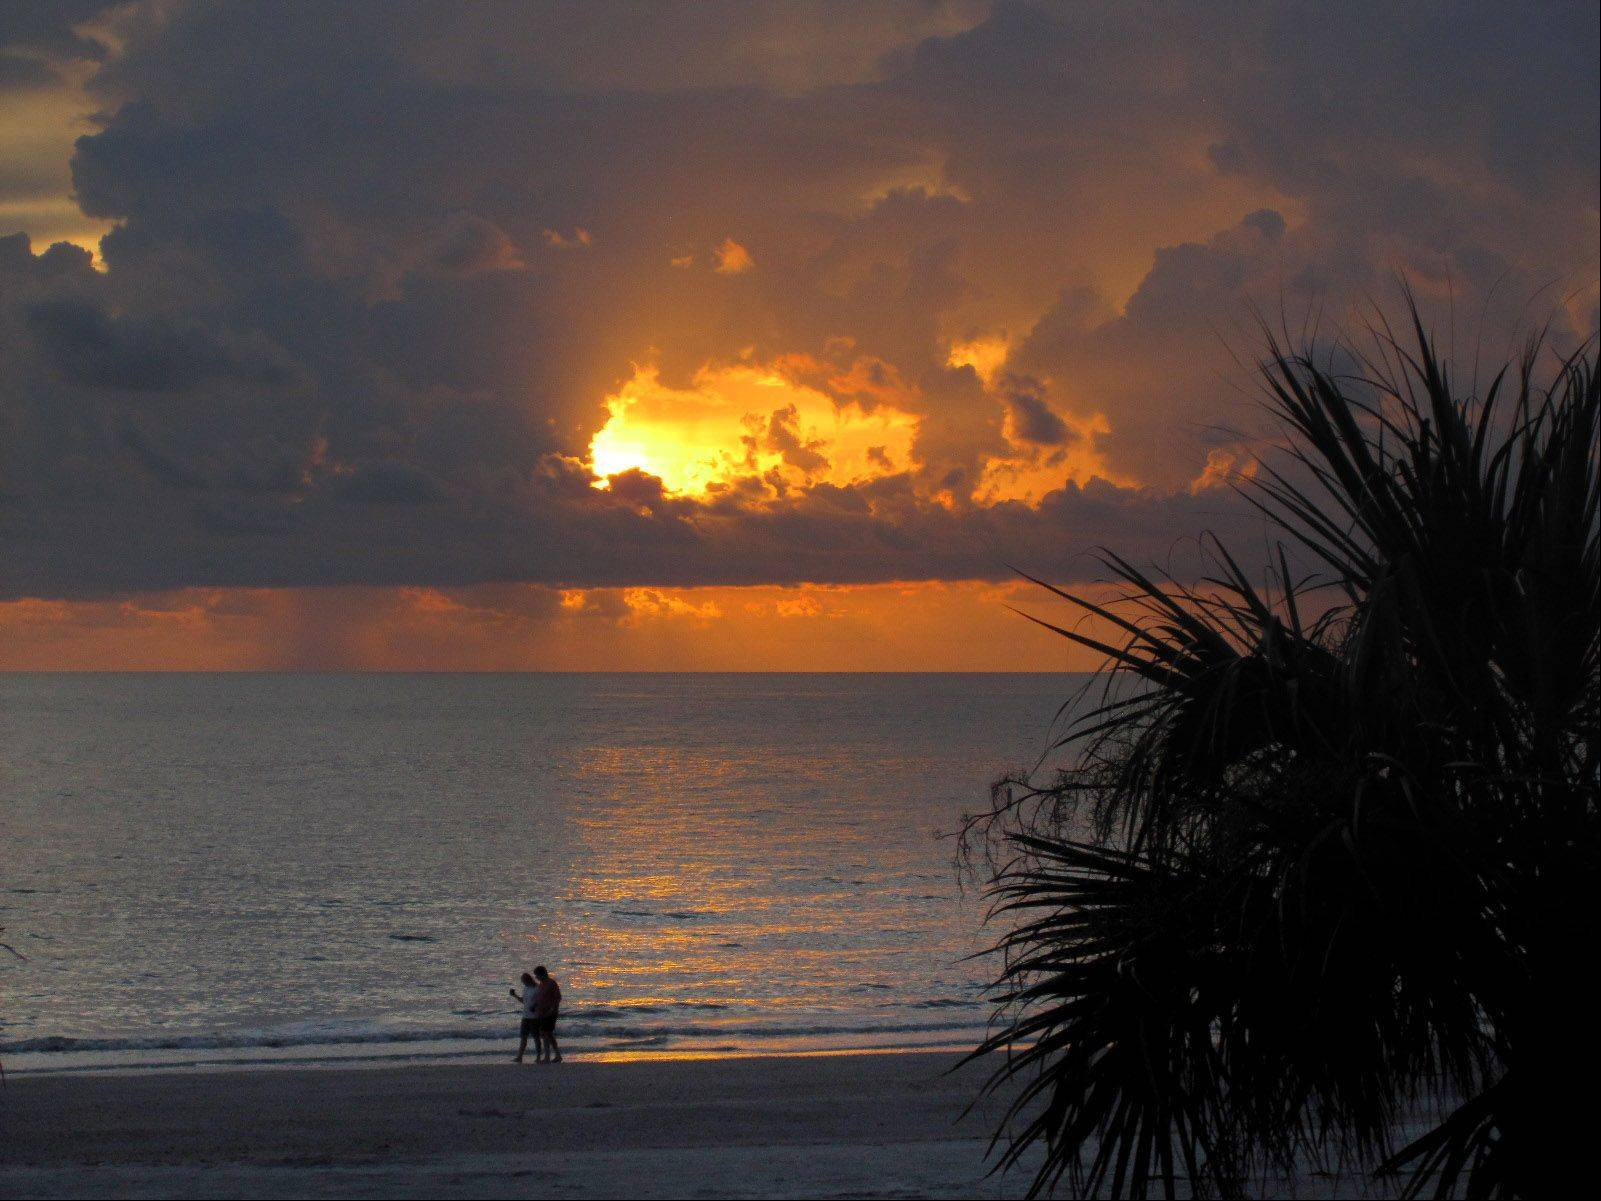 A couple walks on the beach collecting shells in Indian Rocks Beach, FL following a storm the evening of July 11.